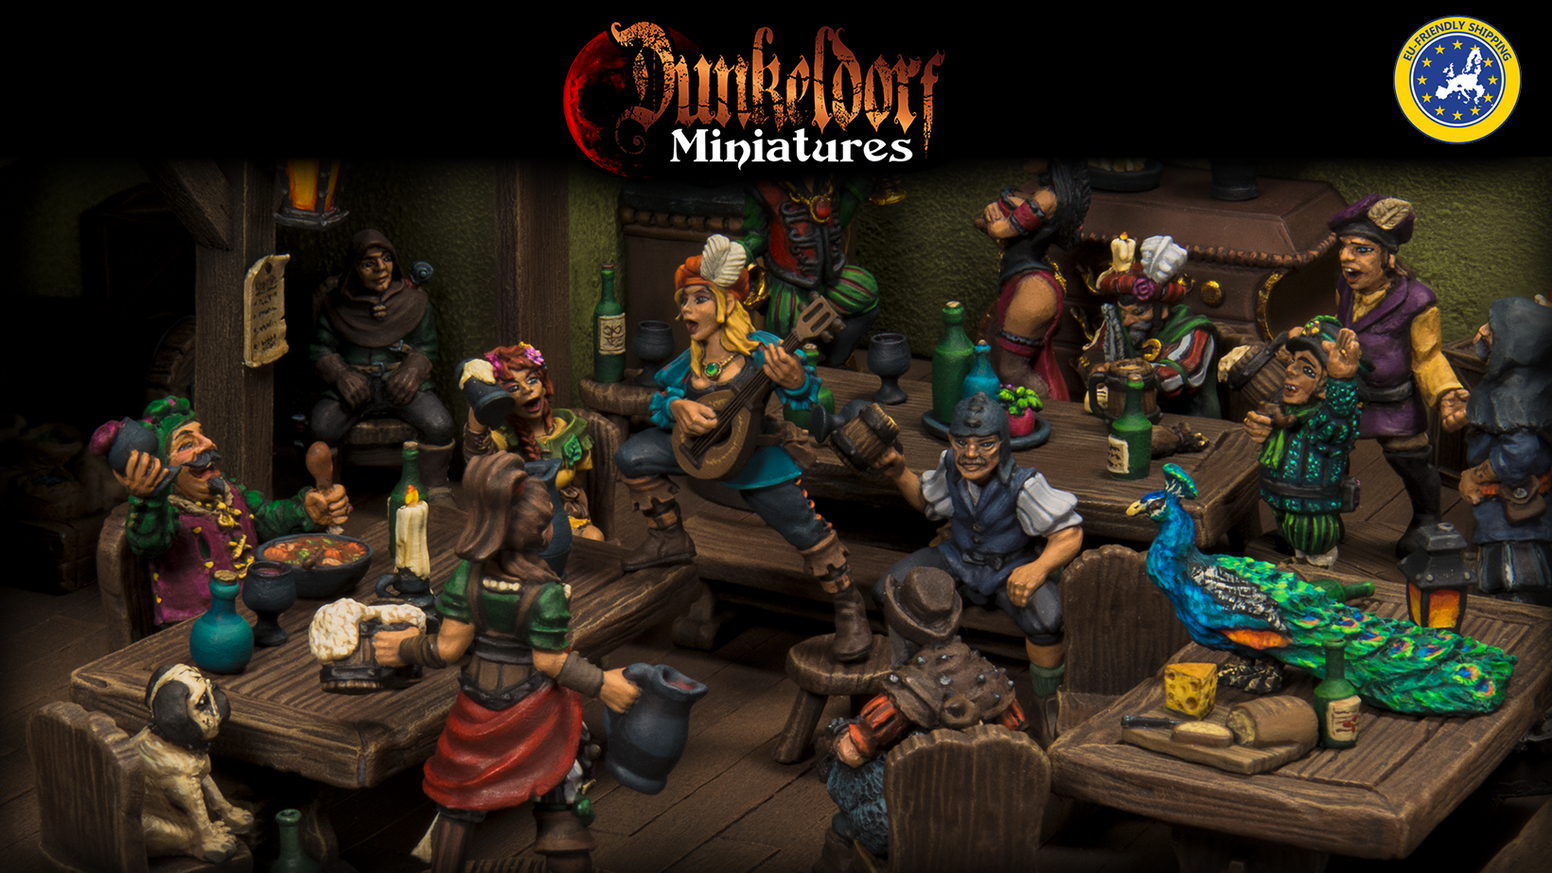 Dunkeldorf Miniatures - A line of characterful townsfolk & tavern miniatures for RPGs and Tabletop Gaming.